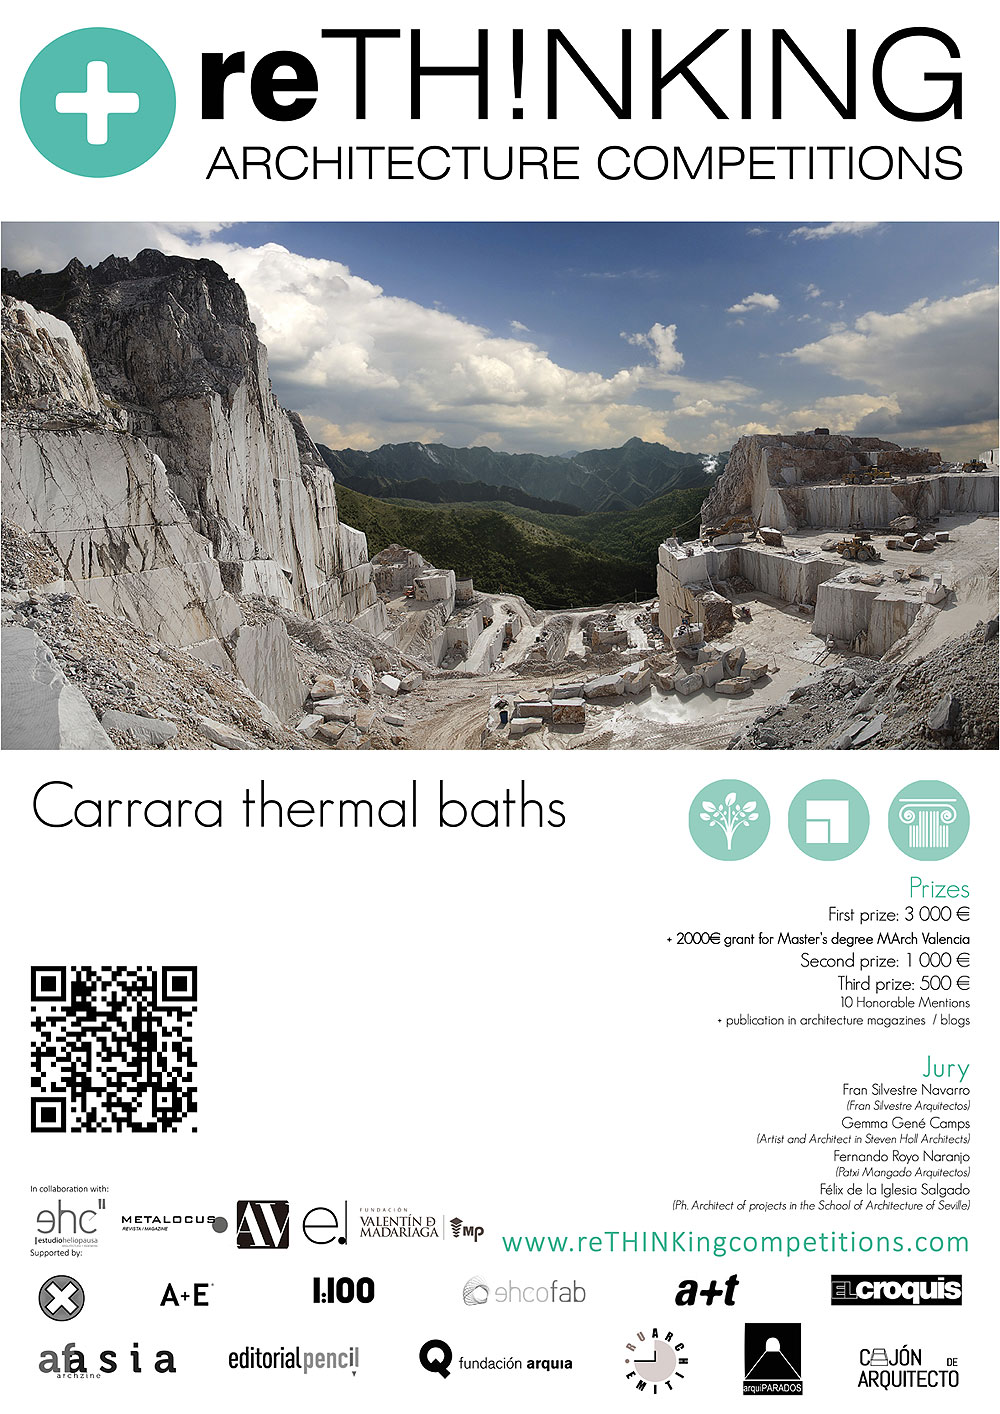 concurso-carrara-thermal-baths (1)